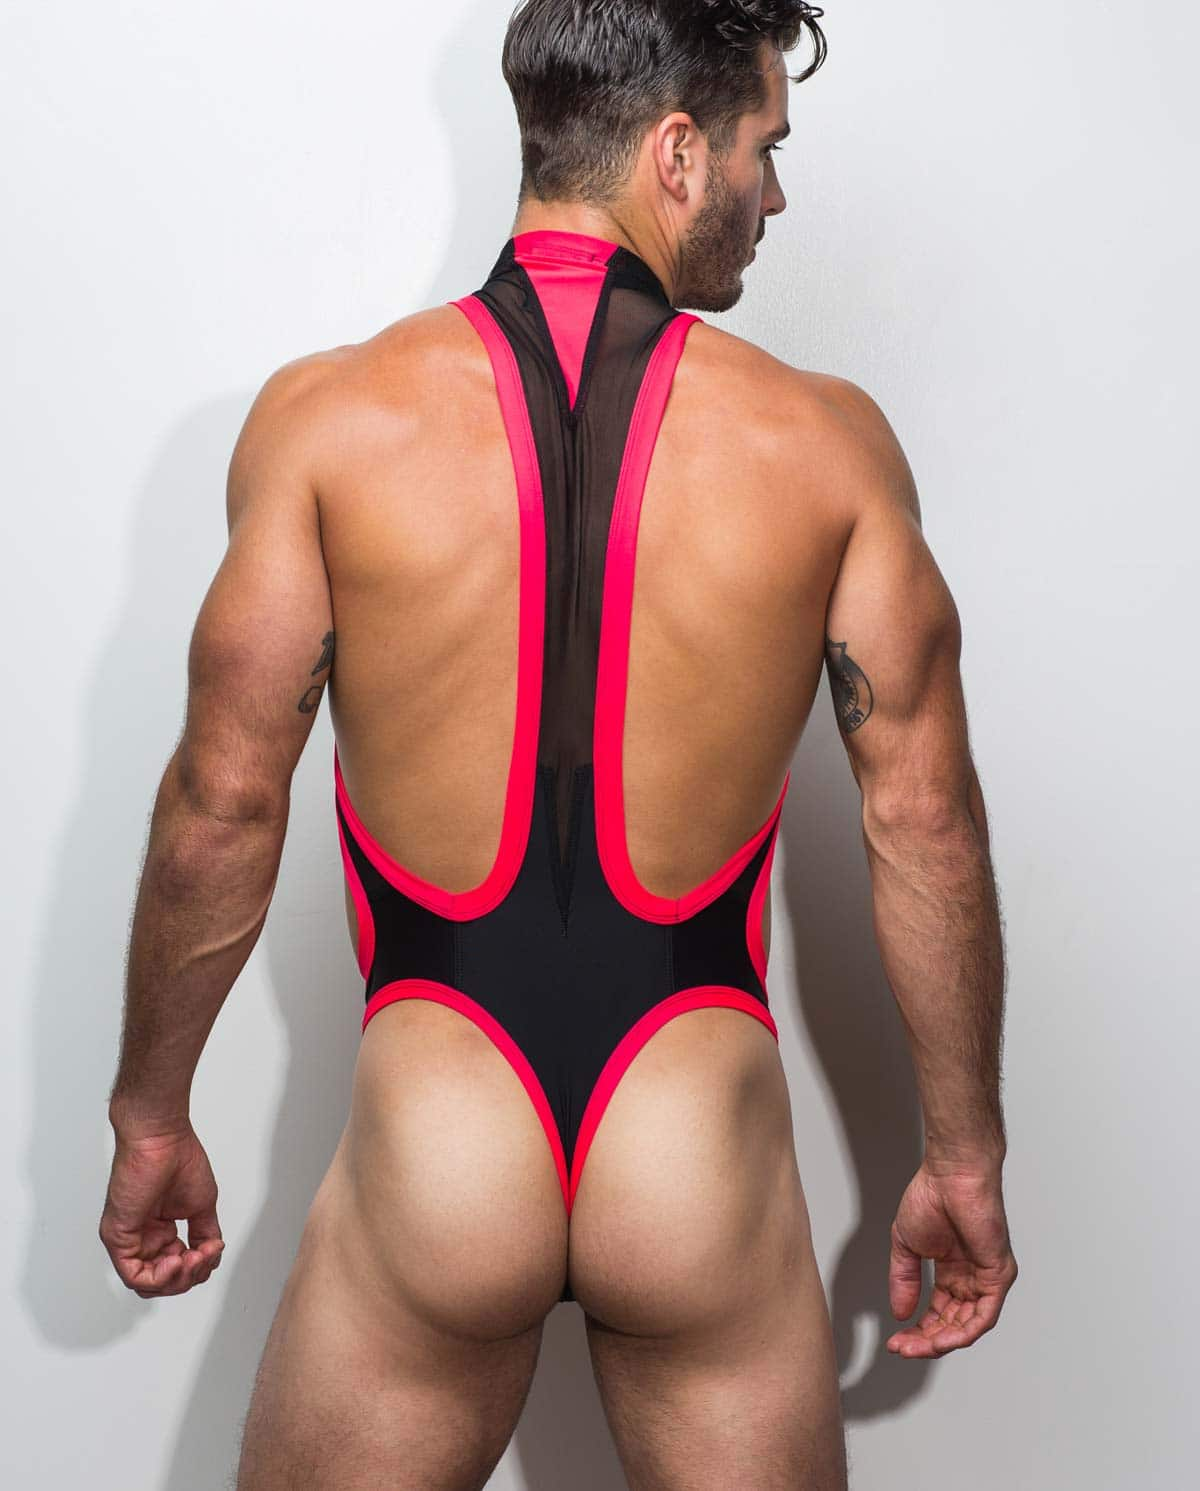 Male underwear model wearing Marco Marco Men's Thong Singlet - Front